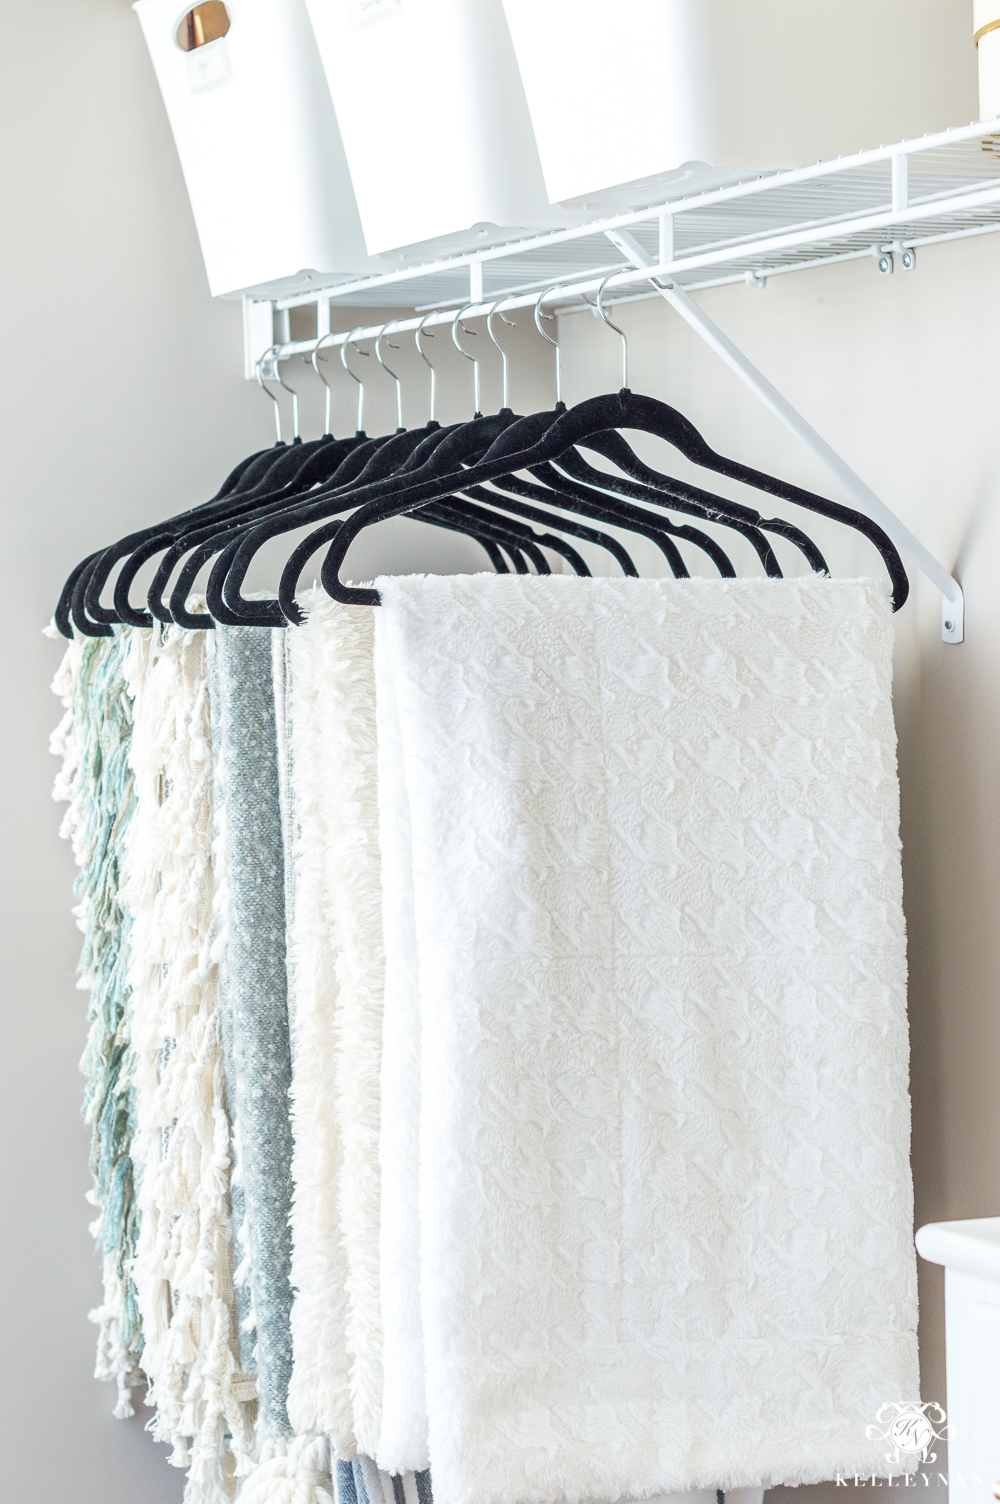 Hanging throw blankets in the closet for storage and organization